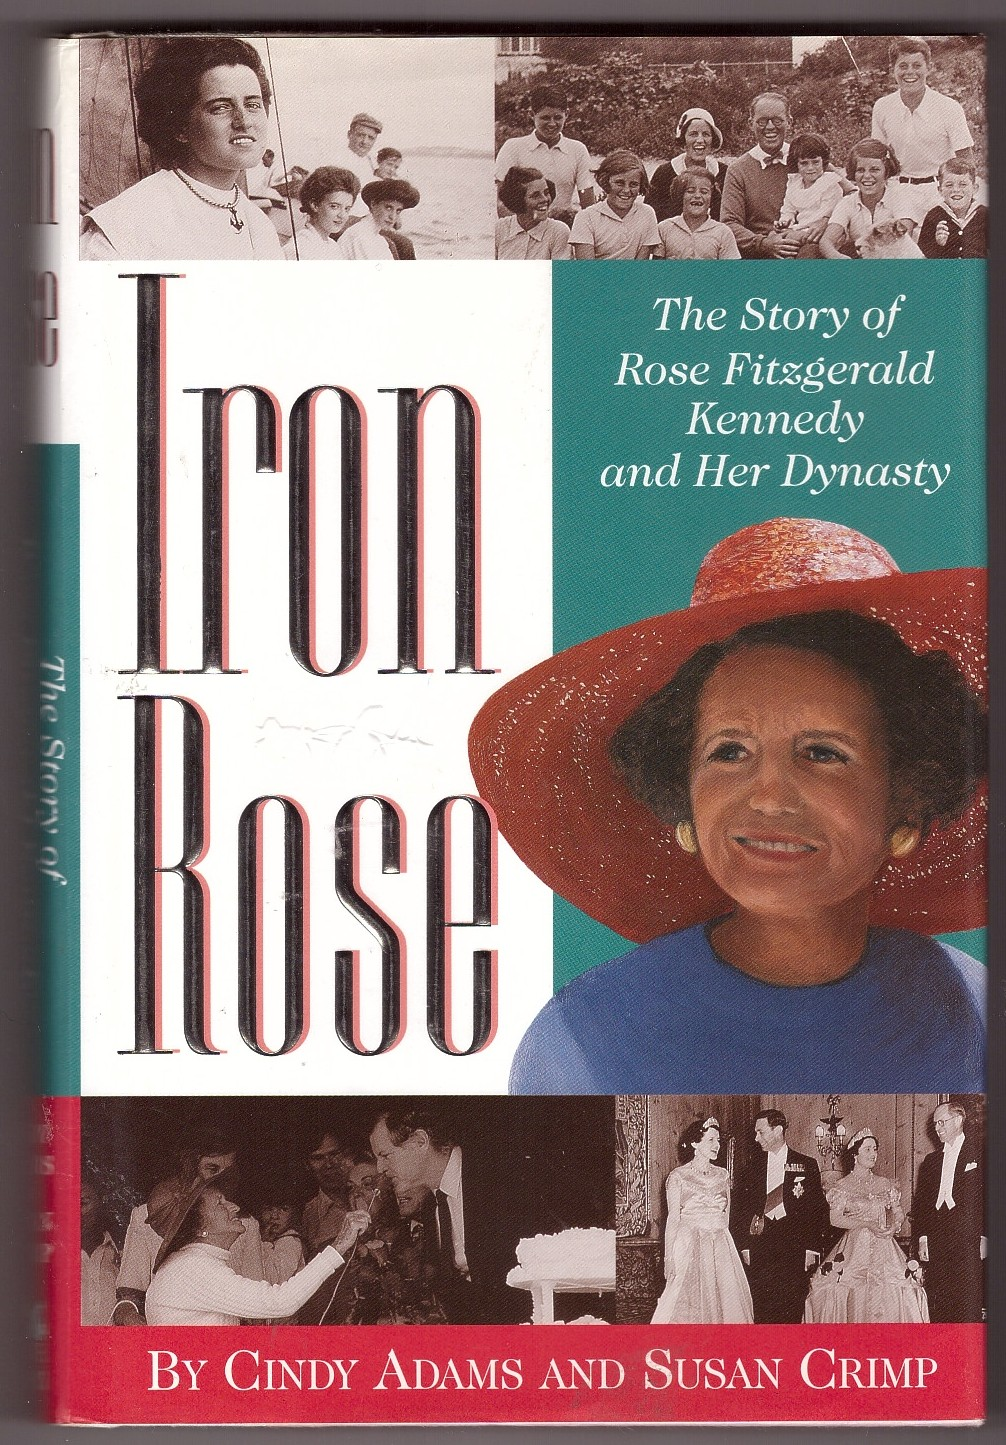 Image for Iron Rose  The Story of Rose Fitzgerald Kennedy and Her Dynasty